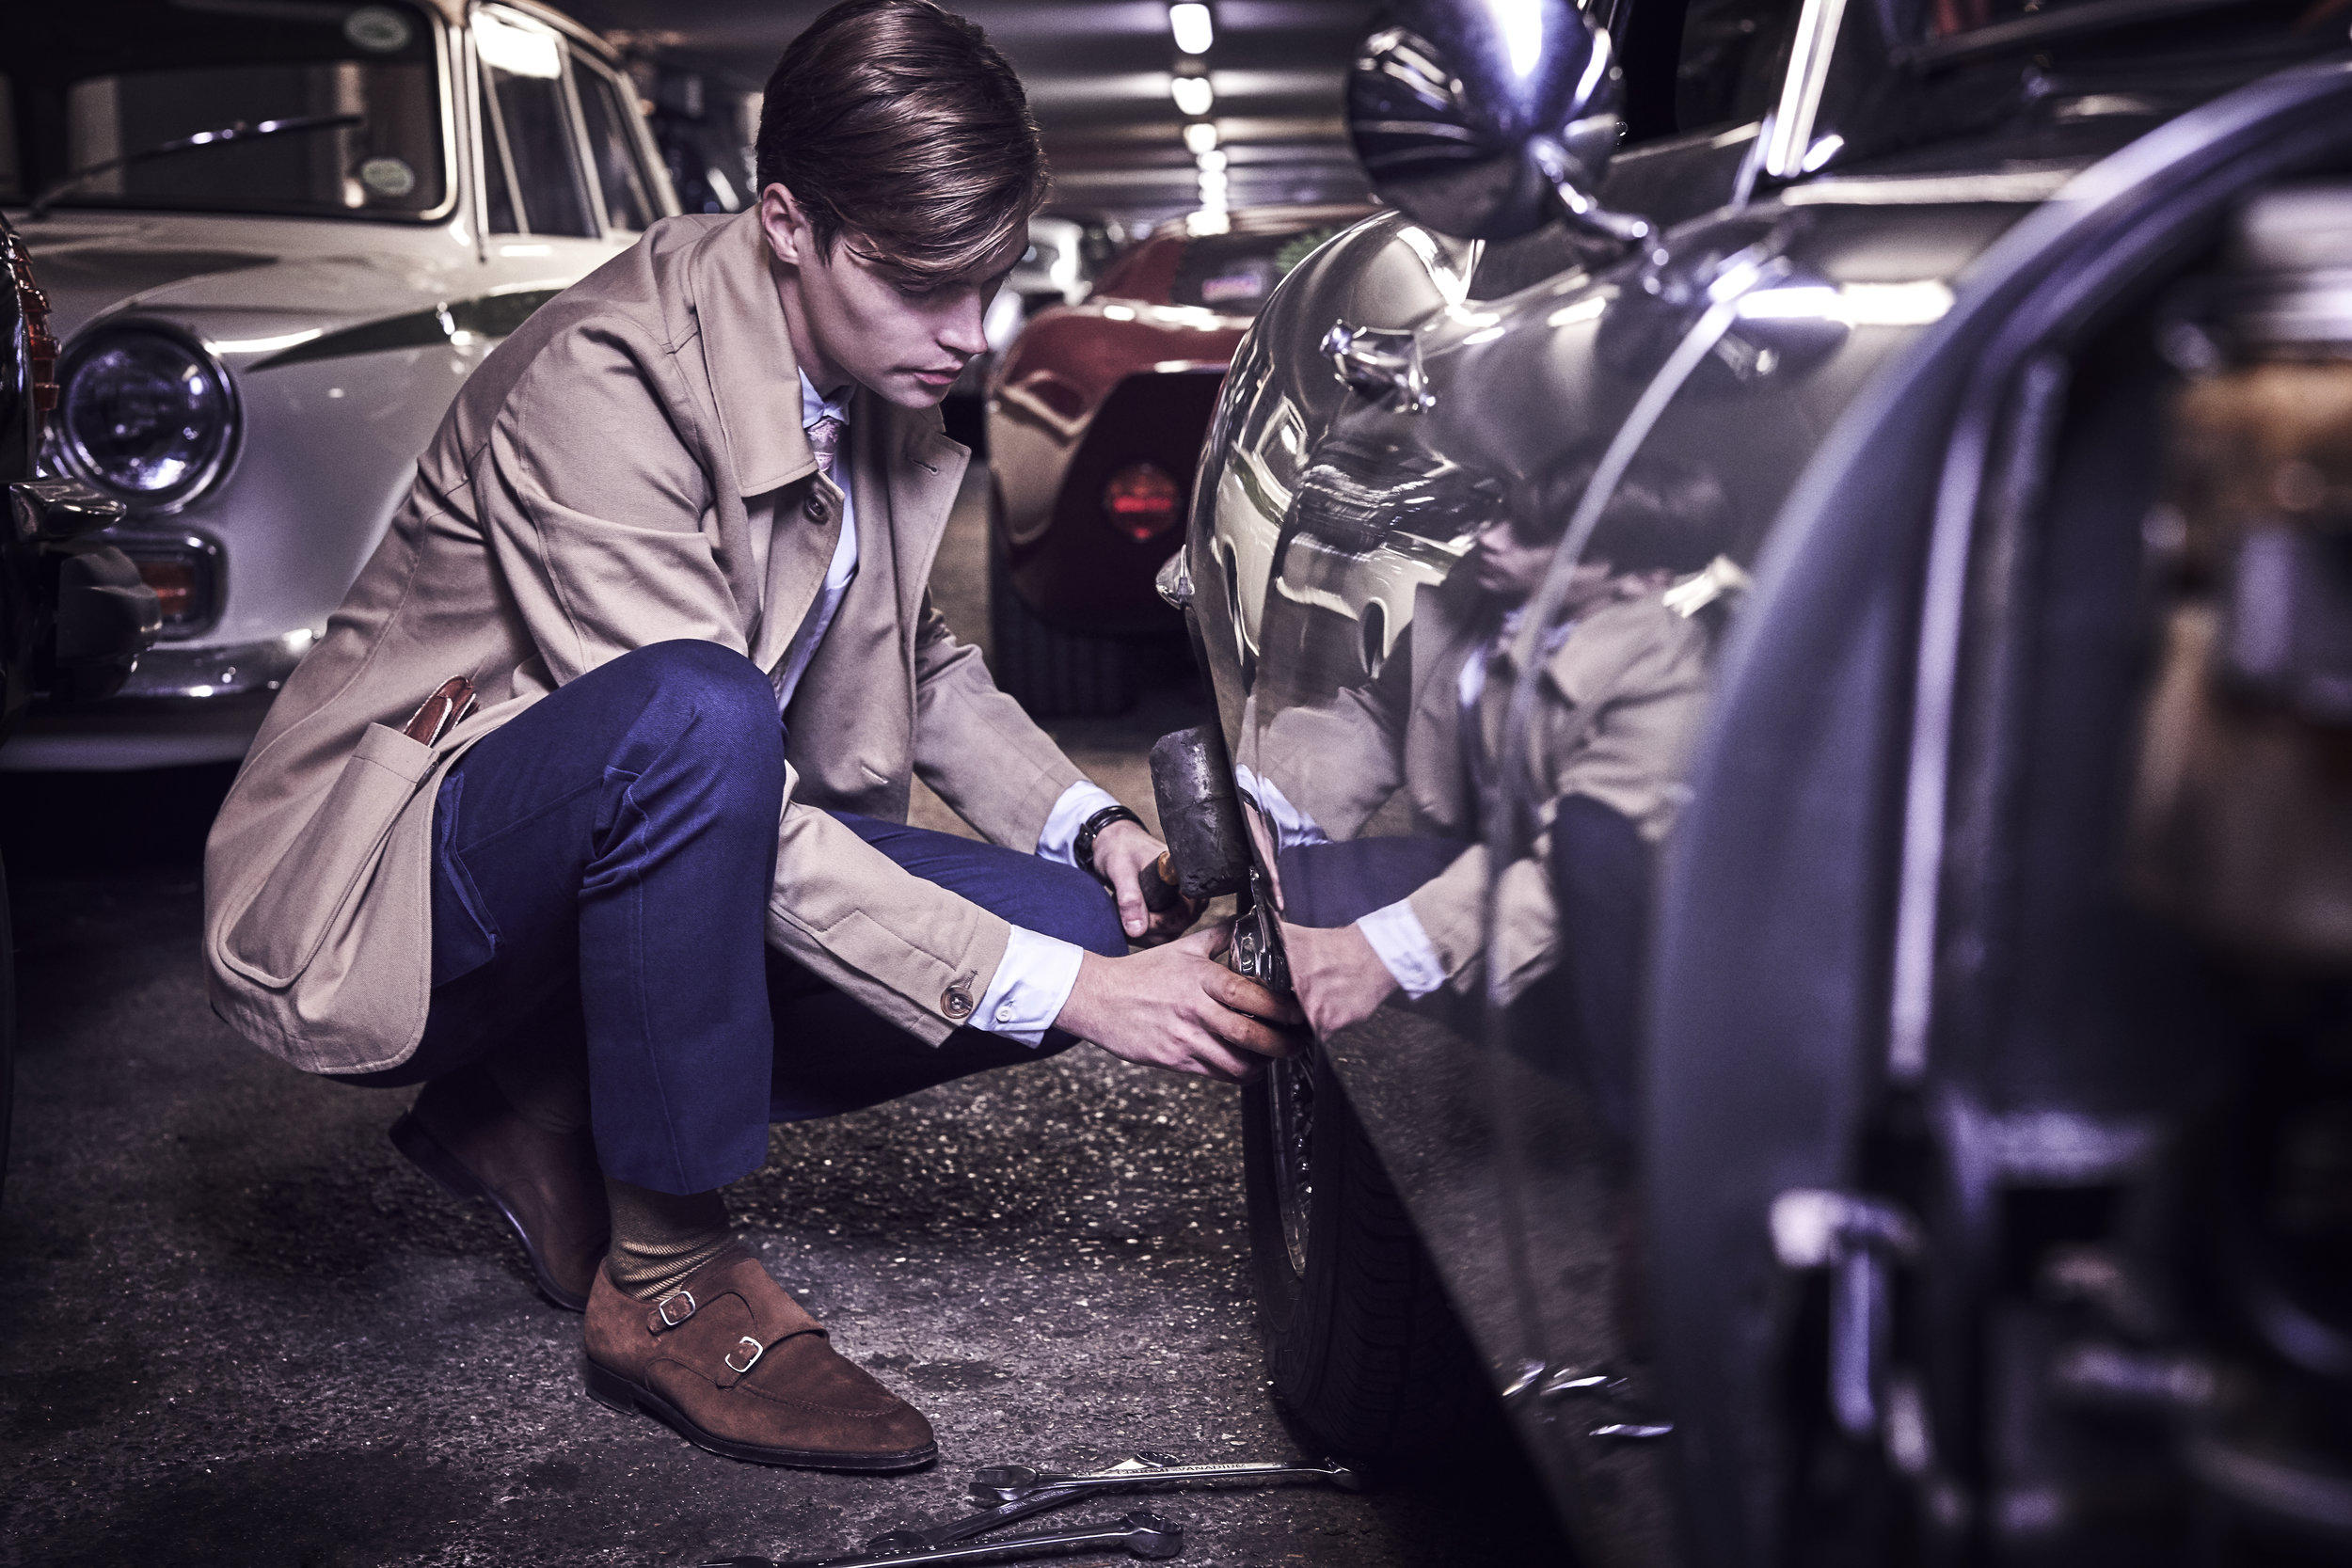 MbE Workwear Deluxe - Where smart meets casual